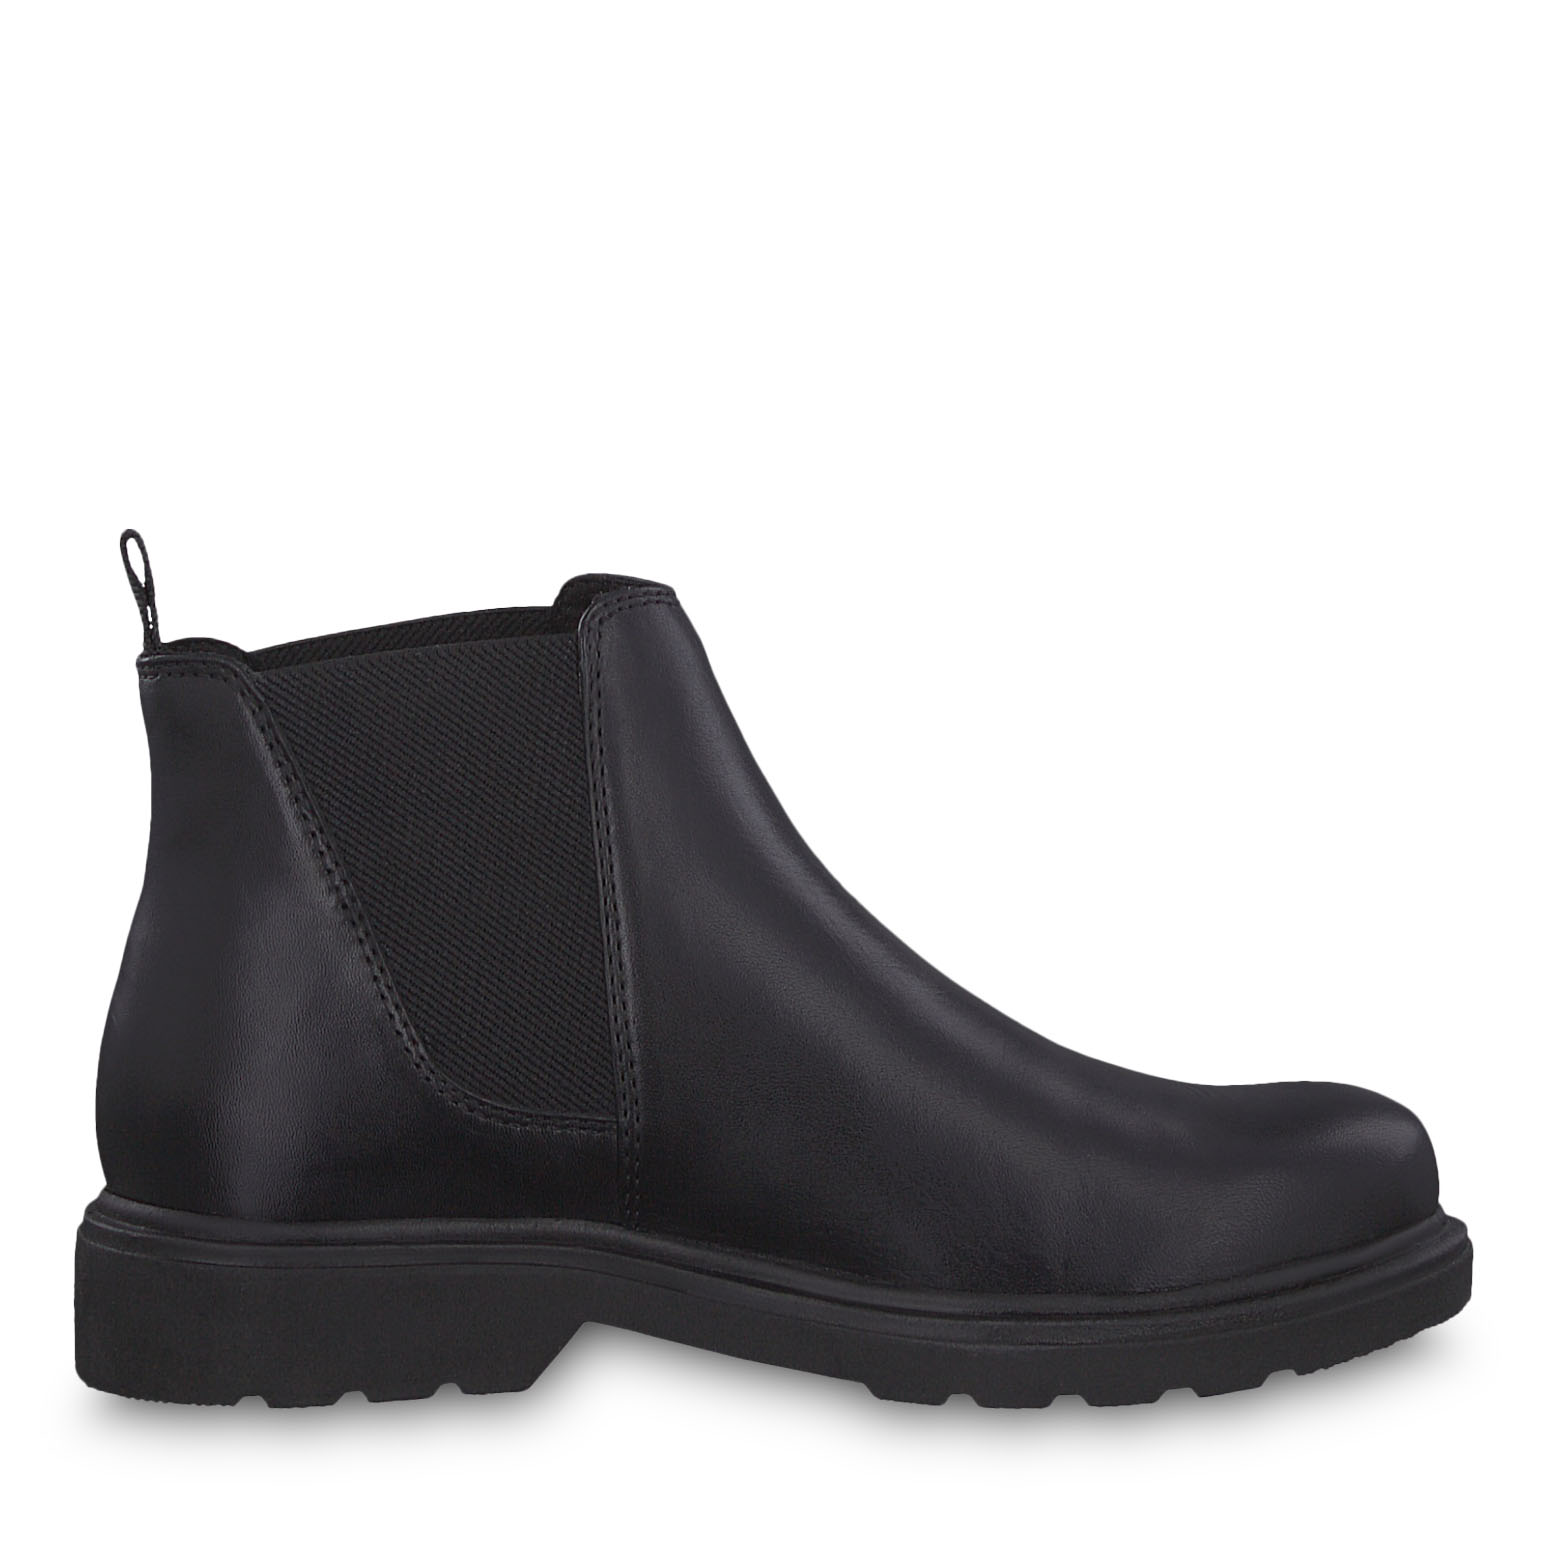 Leder Chelsea Boot - schwarz, BLACK ANTIC, hi-res